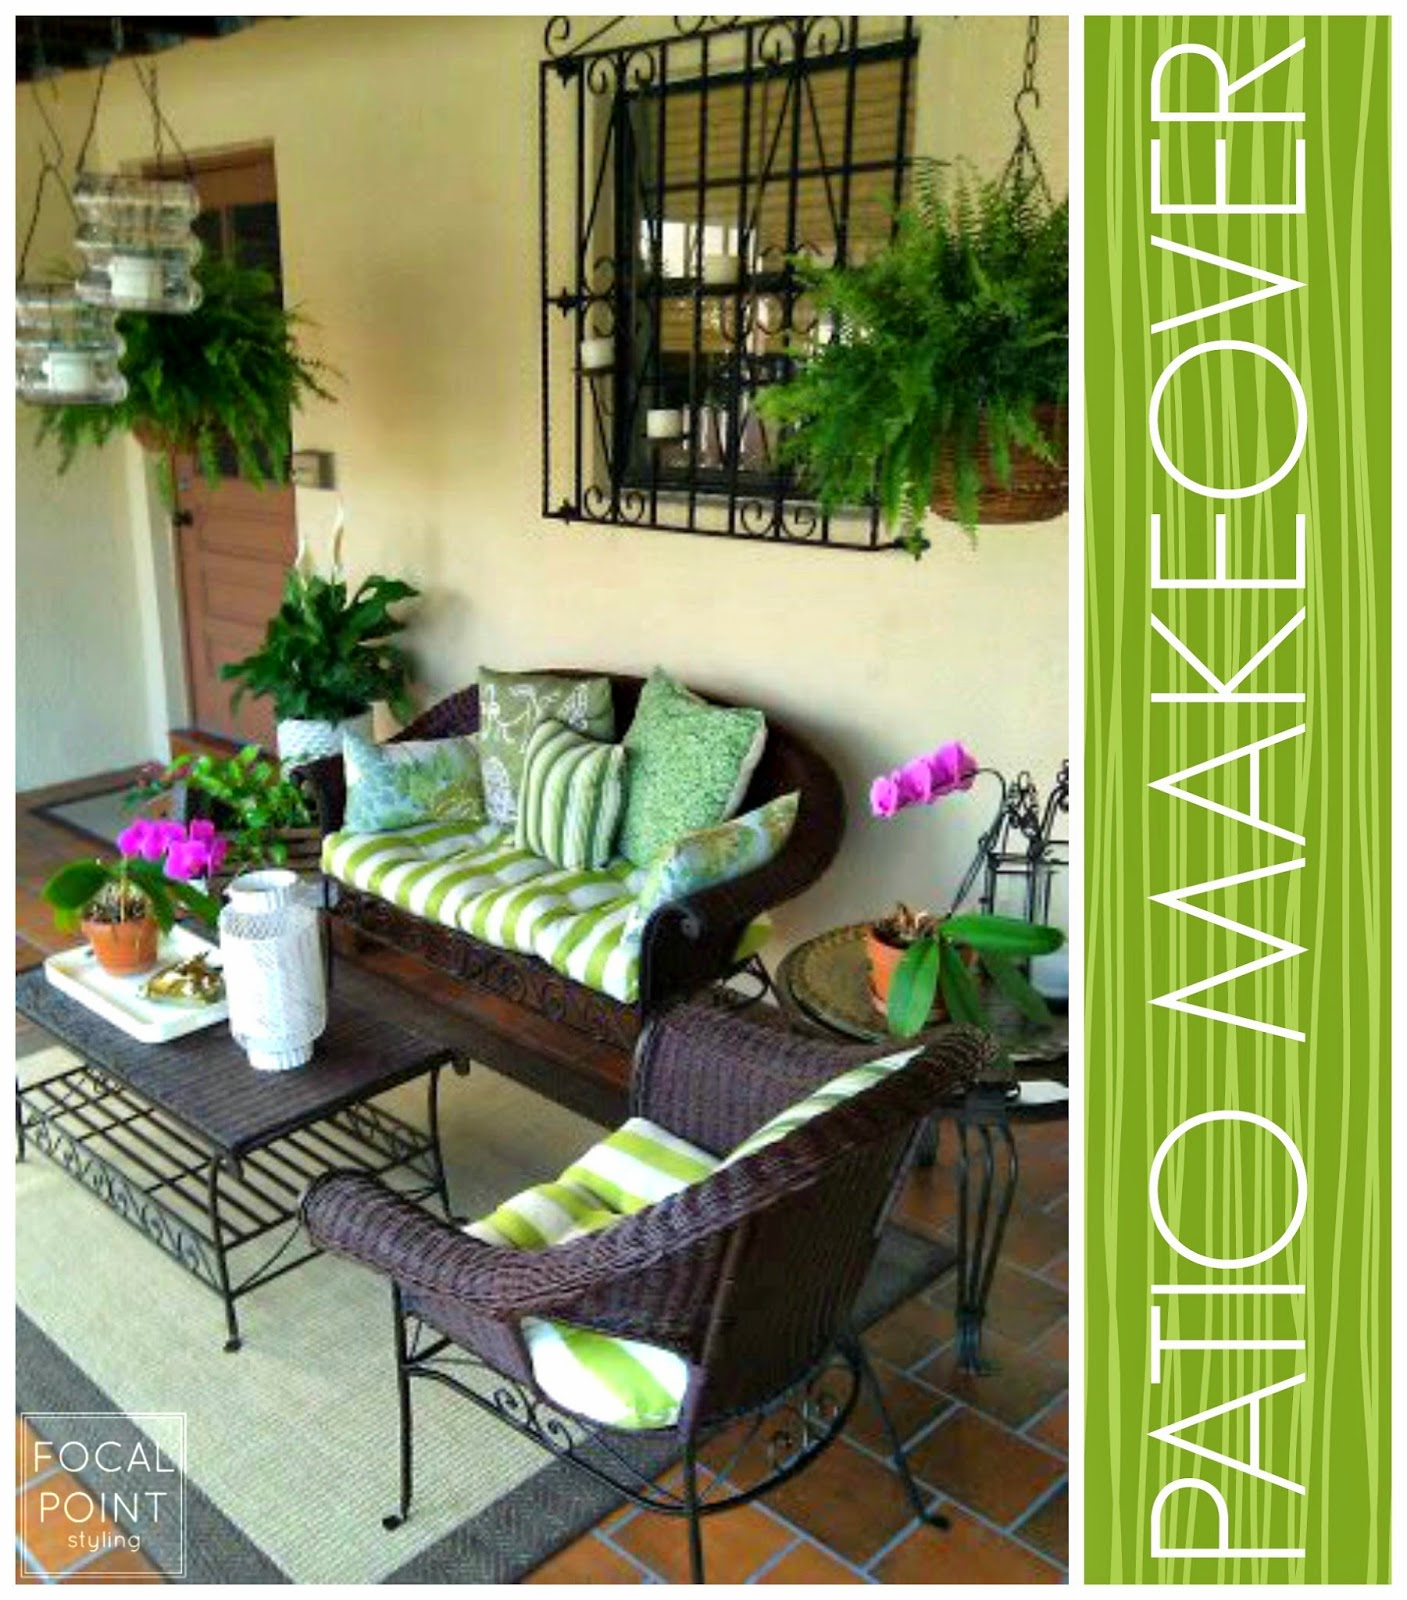 FOCAL POINT STYLING MIXING OLD & NEW FOR A PATIO MAKEOVER UNDER $500